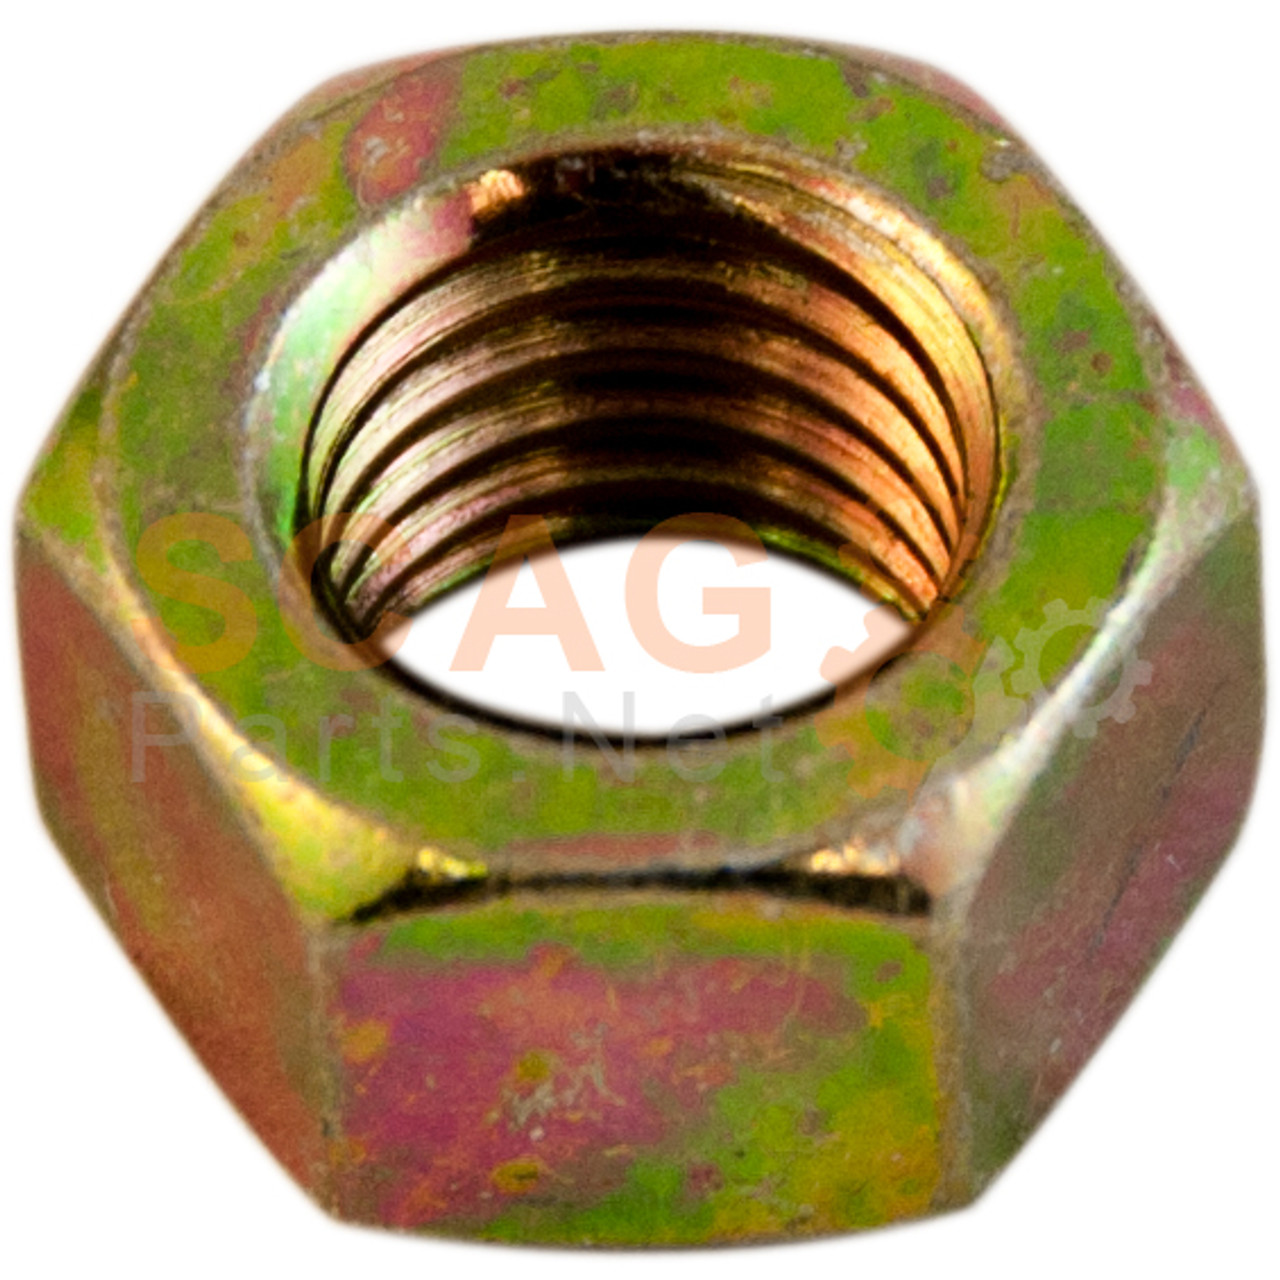 Scag 04020-09 5/8-11 Hex Nut